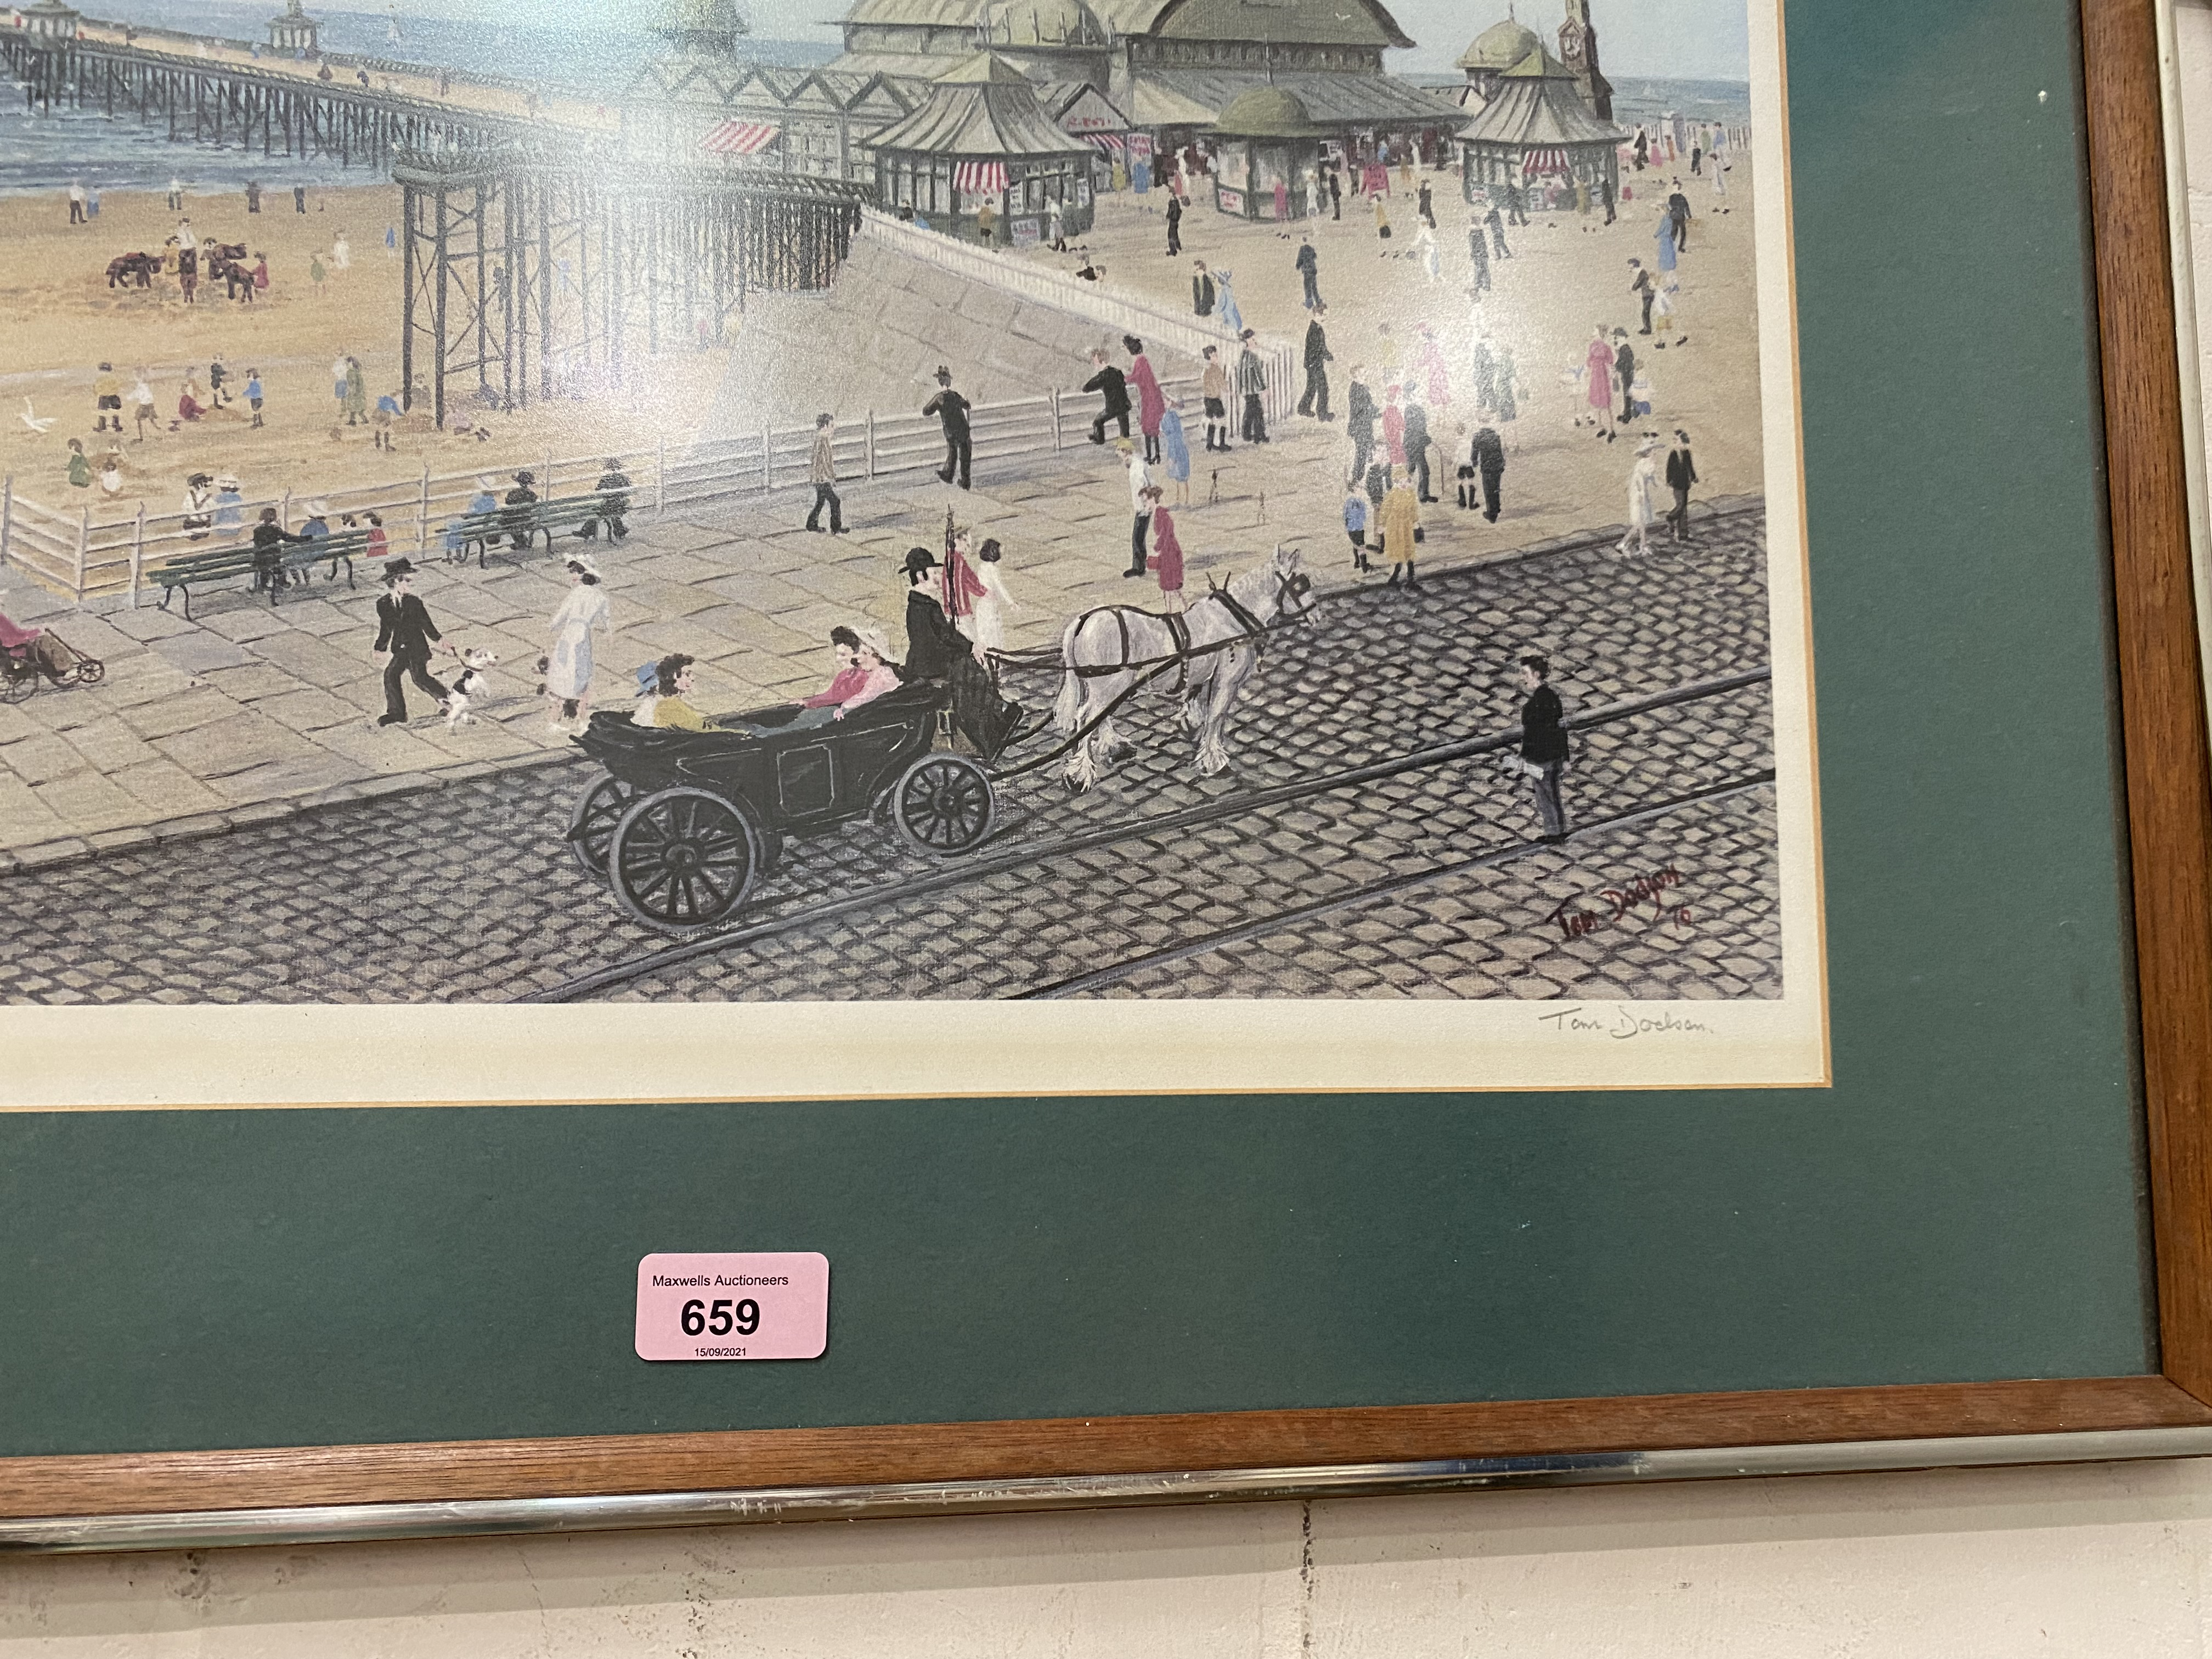 Tom Dodson: limited edition print, Blackpool Pier, signed in pencil, 38 x 45 cm, framed - Image 2 of 2